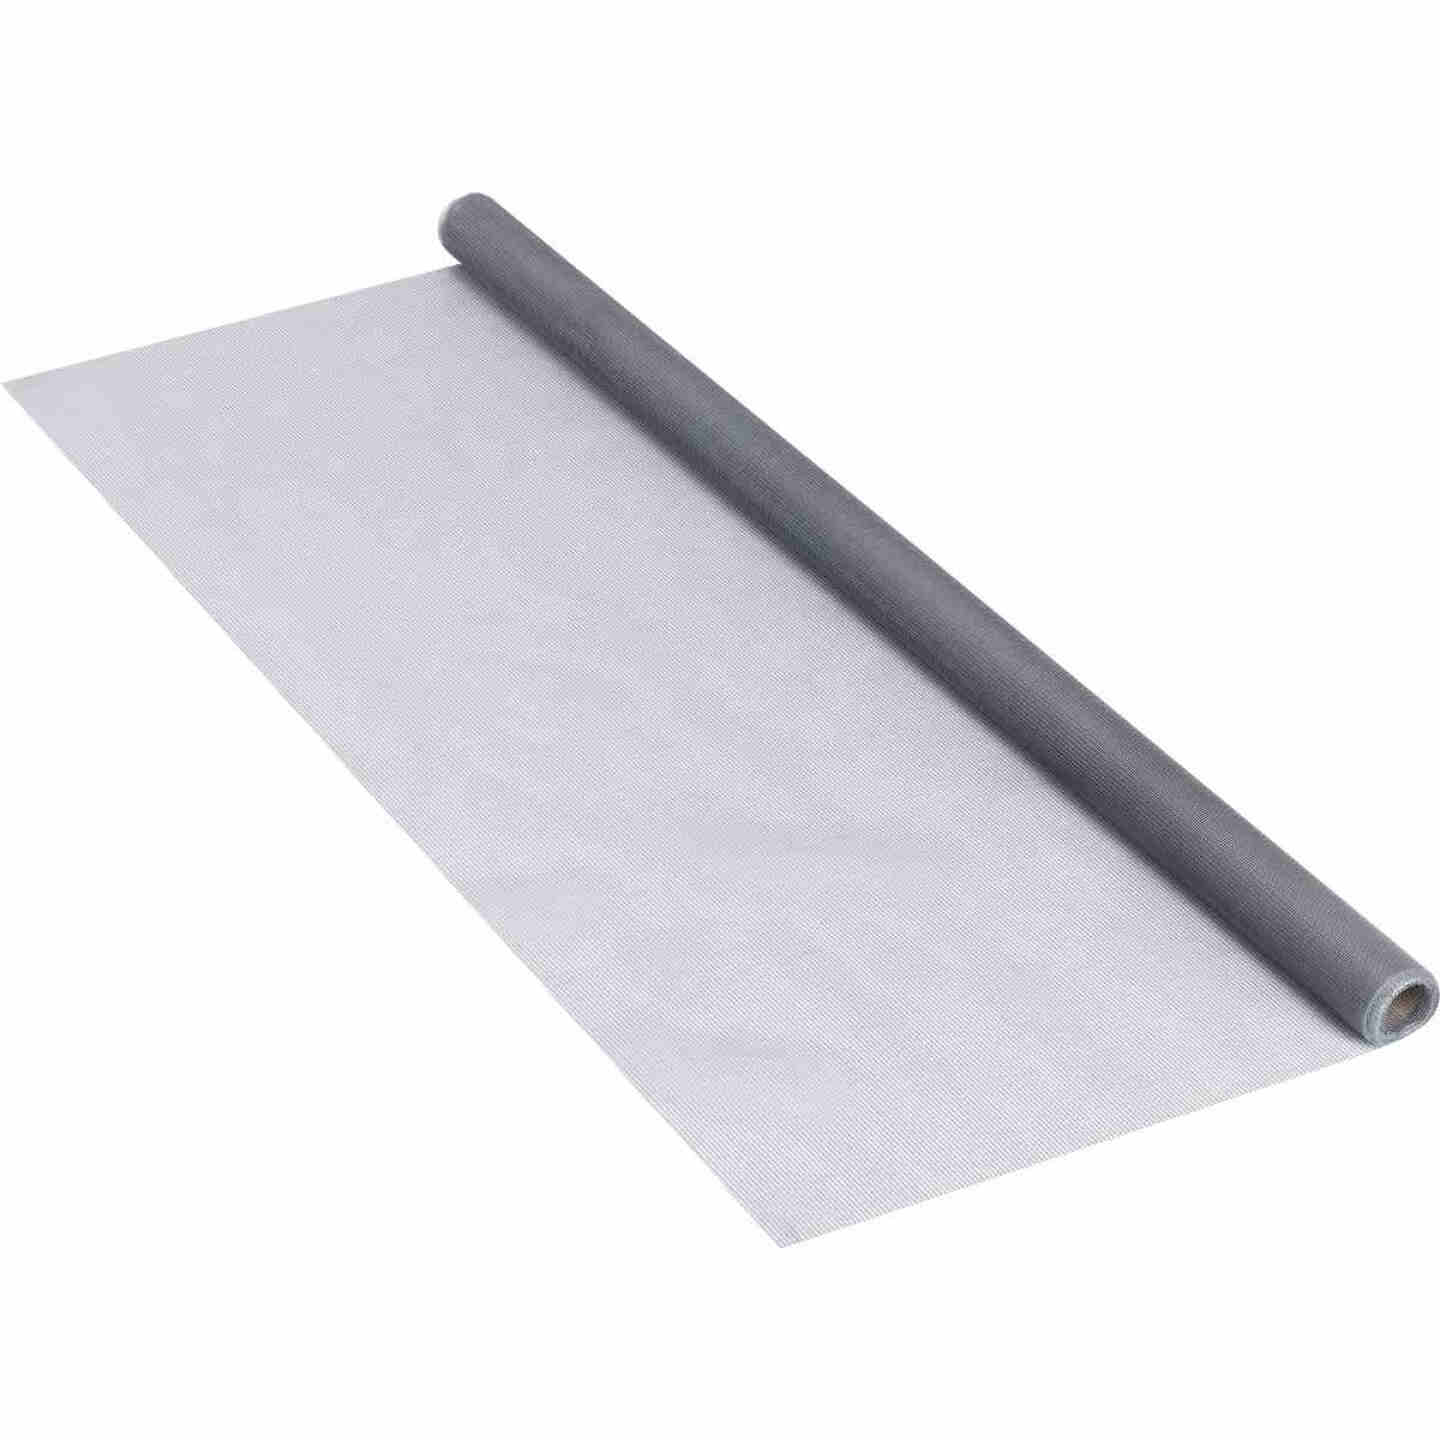 Phifer 36 In. x 84 In. Gray Fiberglass Screen Cloth Ready Rolls Image 3